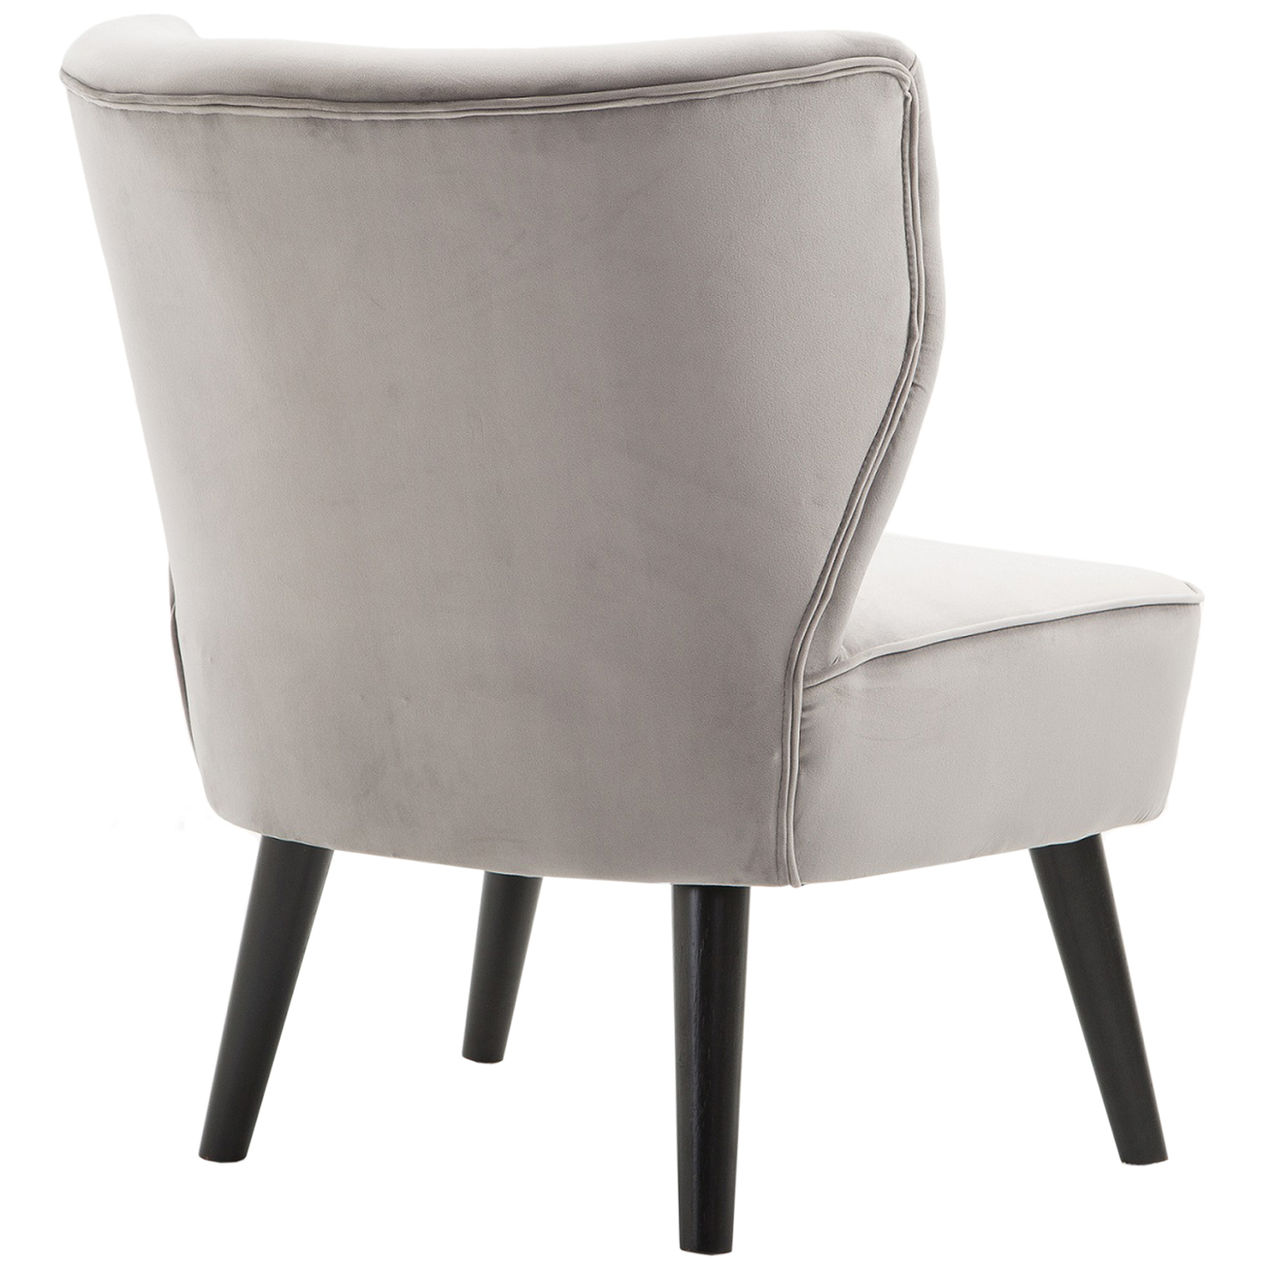 sasha mid century chair grey home round accent table rustic coffee toronto ikea wall storage bins low square dinette target bar stools black side wooden garden lamp and light